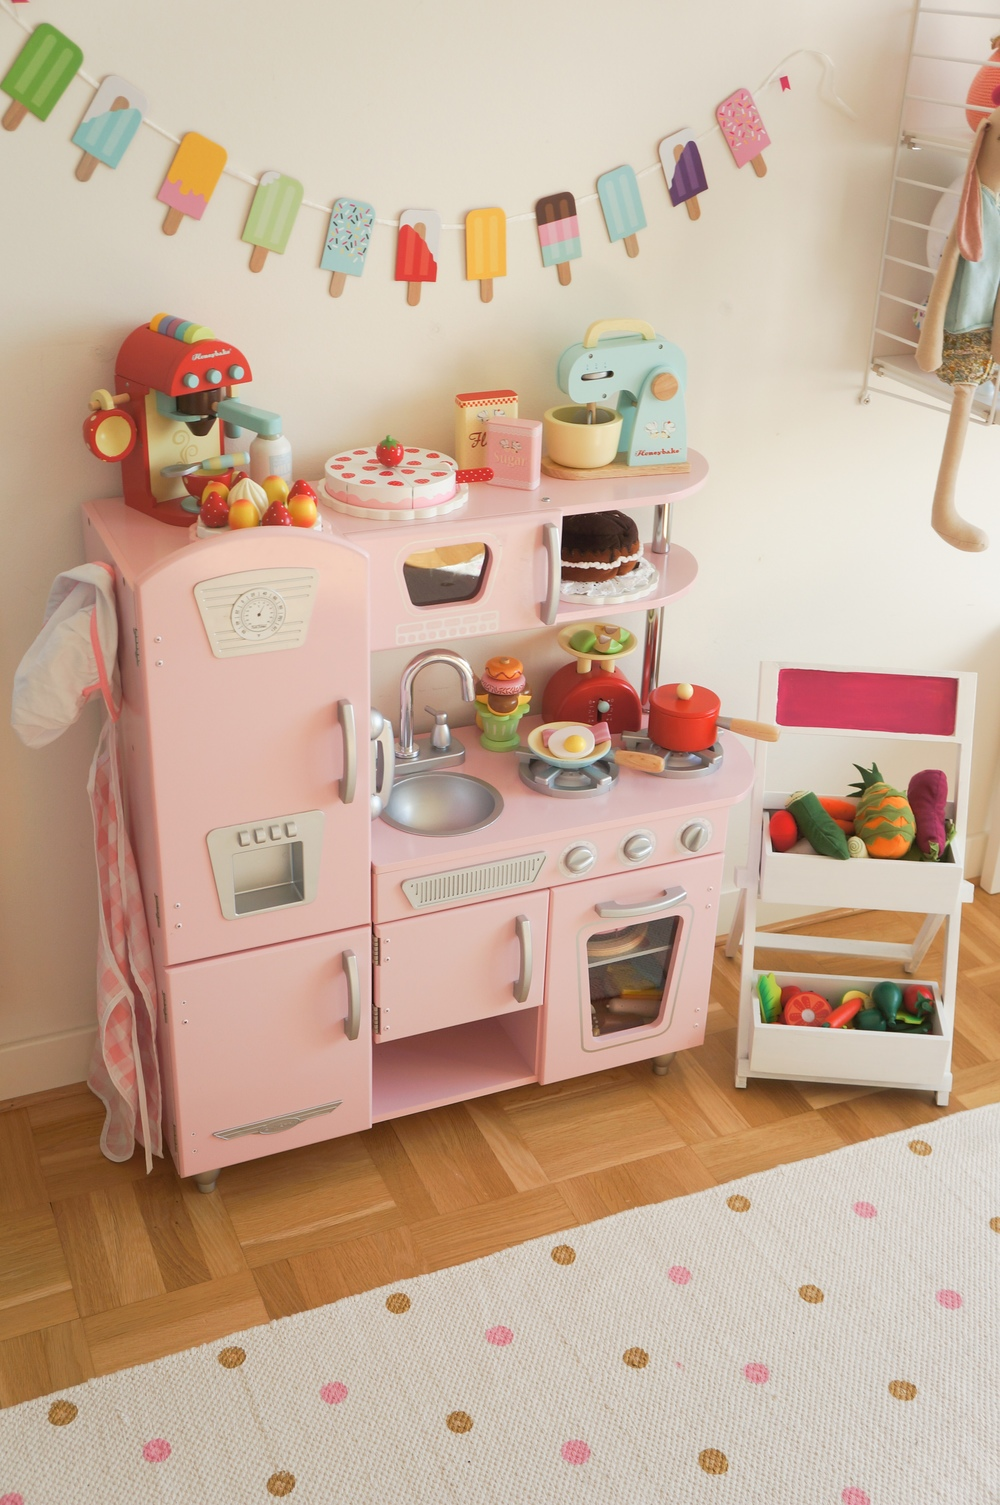 Room tour kidsdesignlife mini style for Play kitchen designs